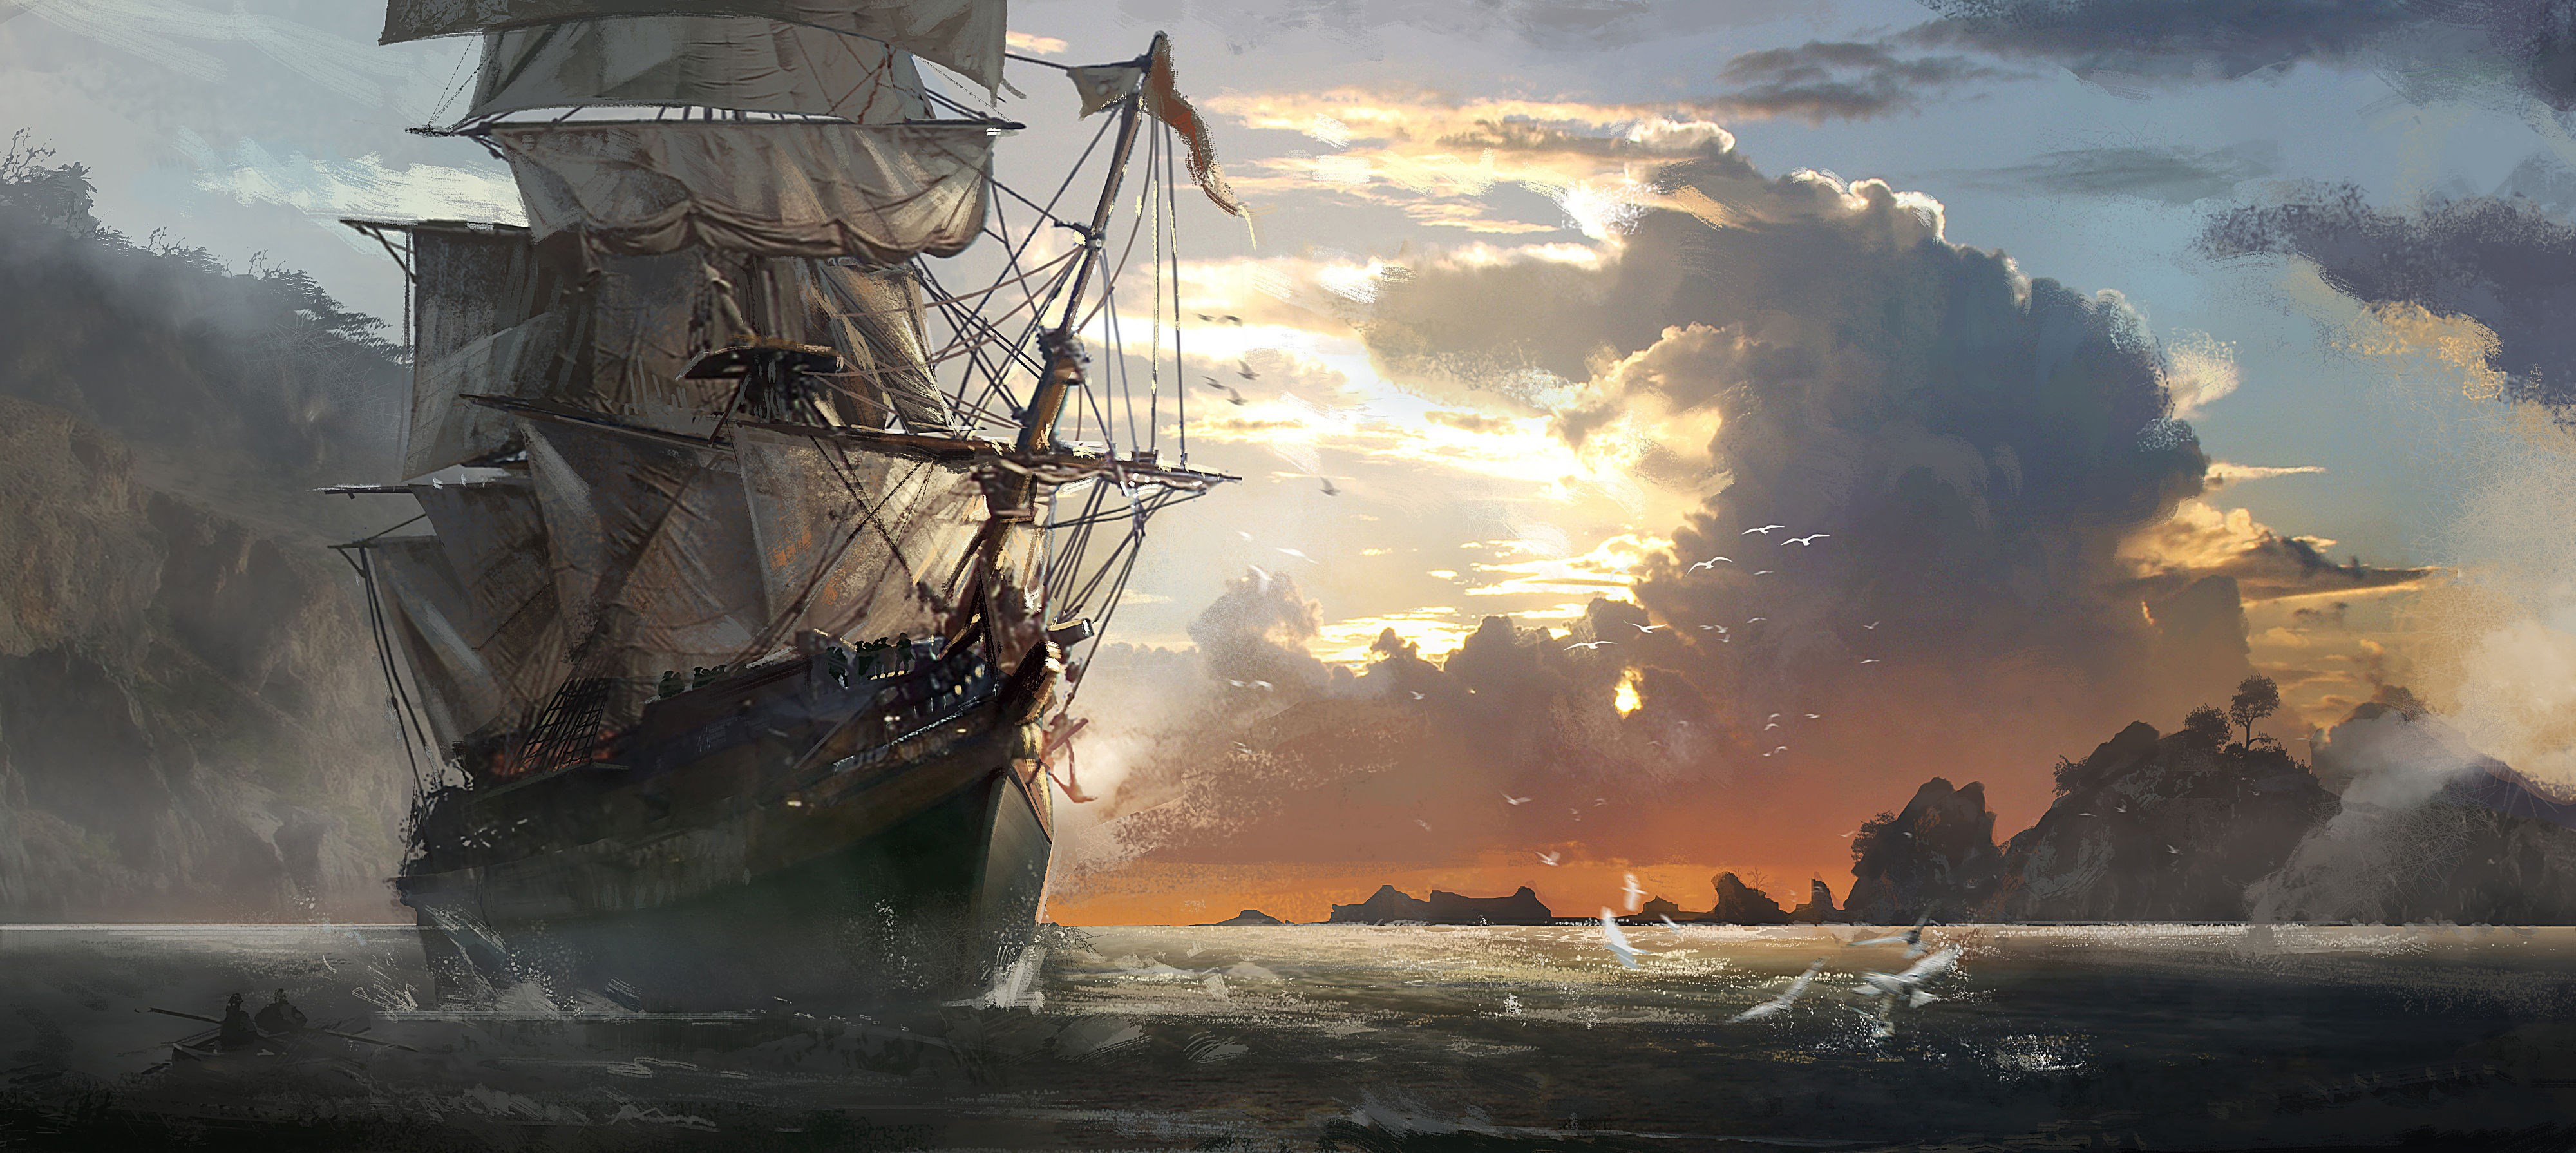 Assassins creed iv black flag 4k ultra hd wallpaper high quality walls assassins creed iv black flag 4k ultra hd wallpaper voltagebd Image collections